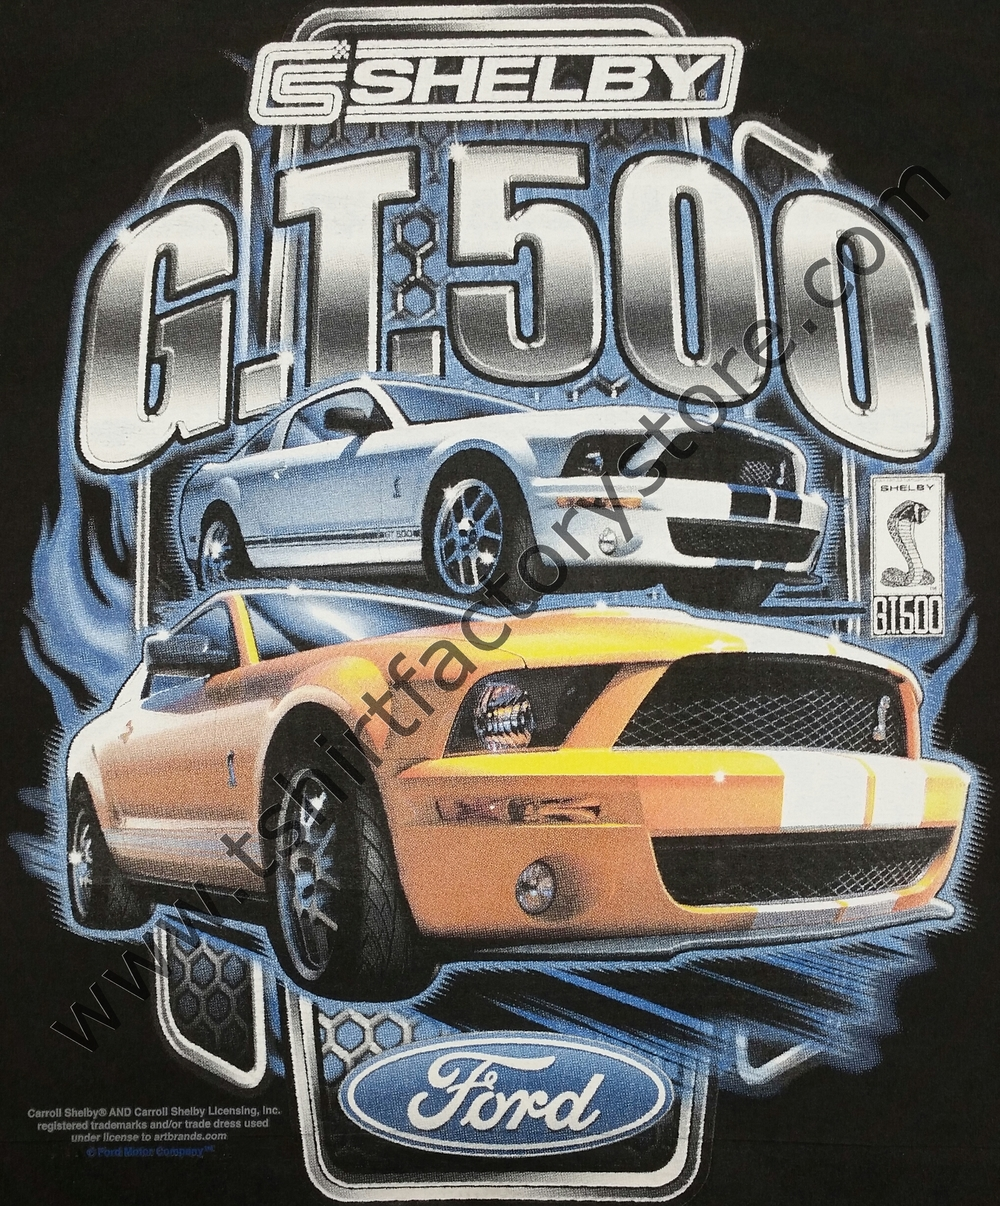 Ford mustang shelby gt500 yellow white t shirt factory shop printed t shirts sweatshirts and hoodies